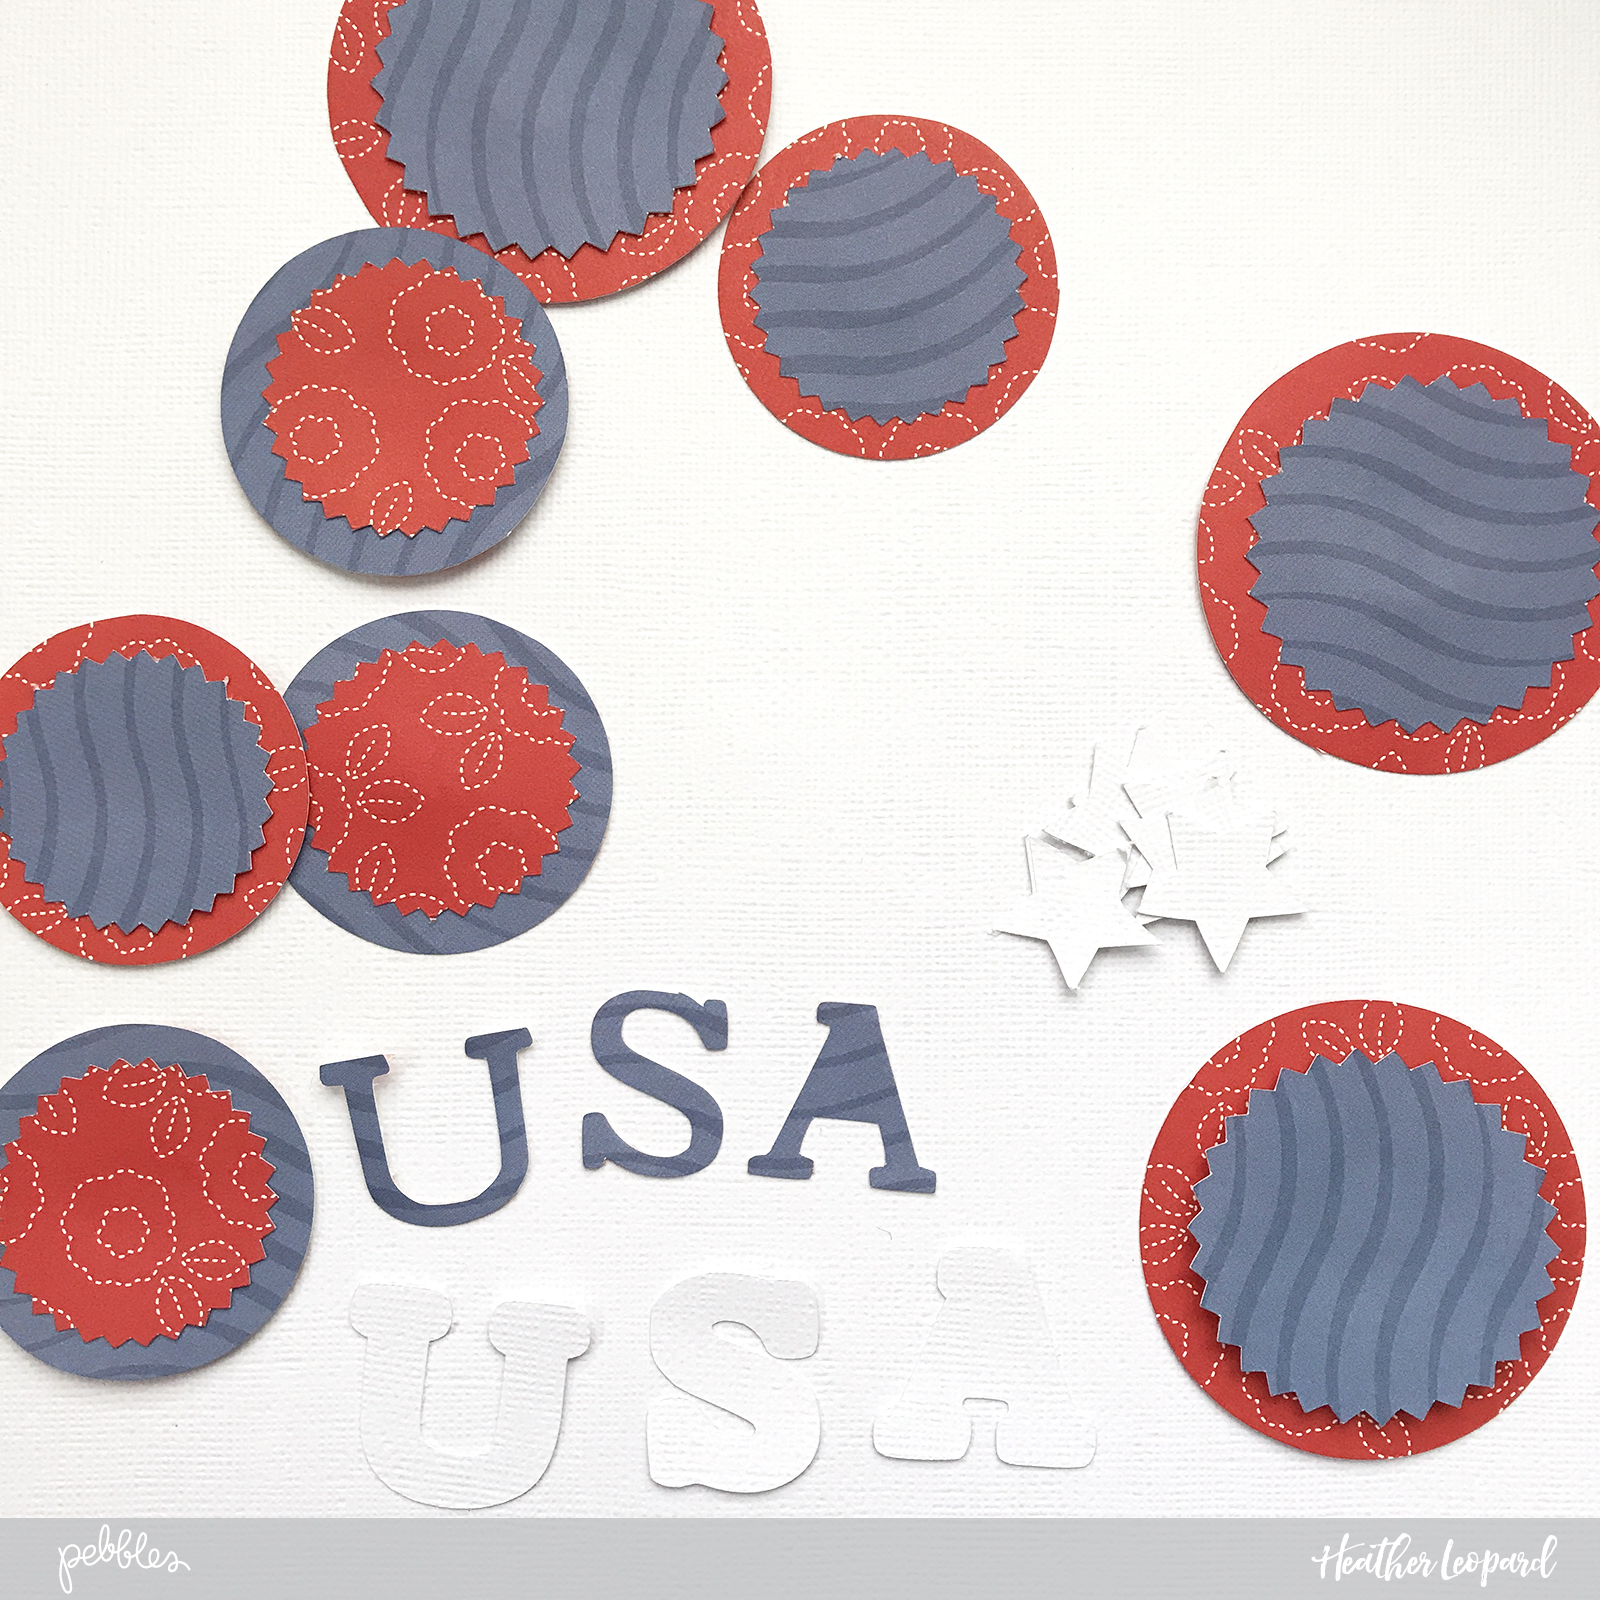 Red, white and blue Patriotic celebration themed party decor by @heatherleopard using @PebblesInc patterned papers. #madewithpebbles #heatherleopard #patriotic #4thofjuly #4thofjulyparty #patrioticparty